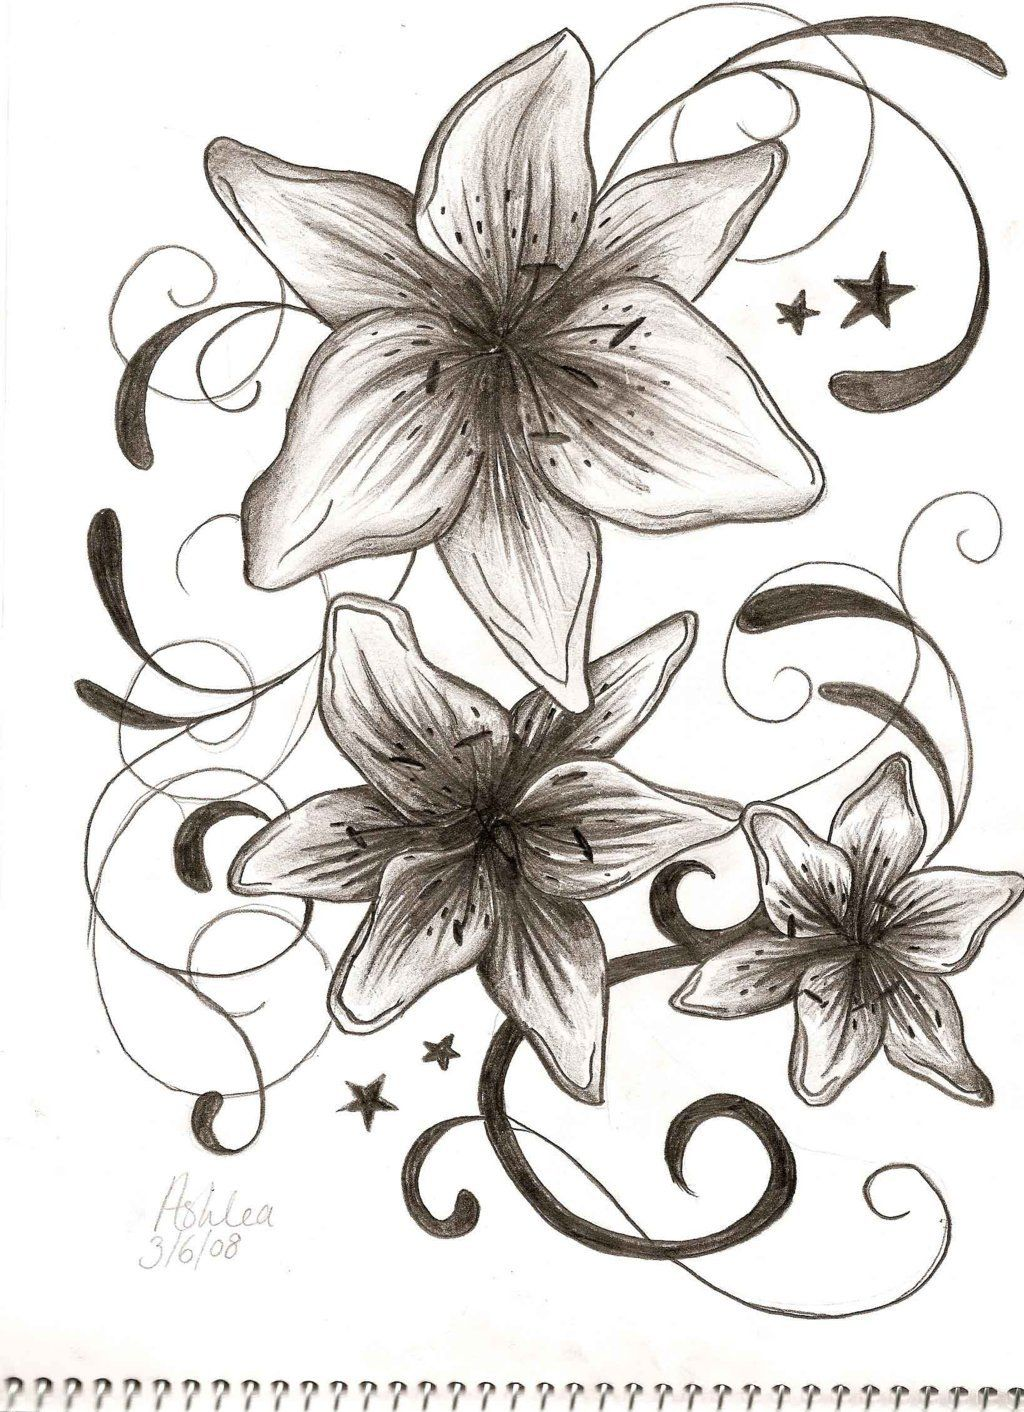 Geisha girl tattoo pictures 36529 inspirational tattoos tattoos i was told that this kind of design was very popular so i had ago hb lily and stars tattoo tribal izmirmasajfo Image collections